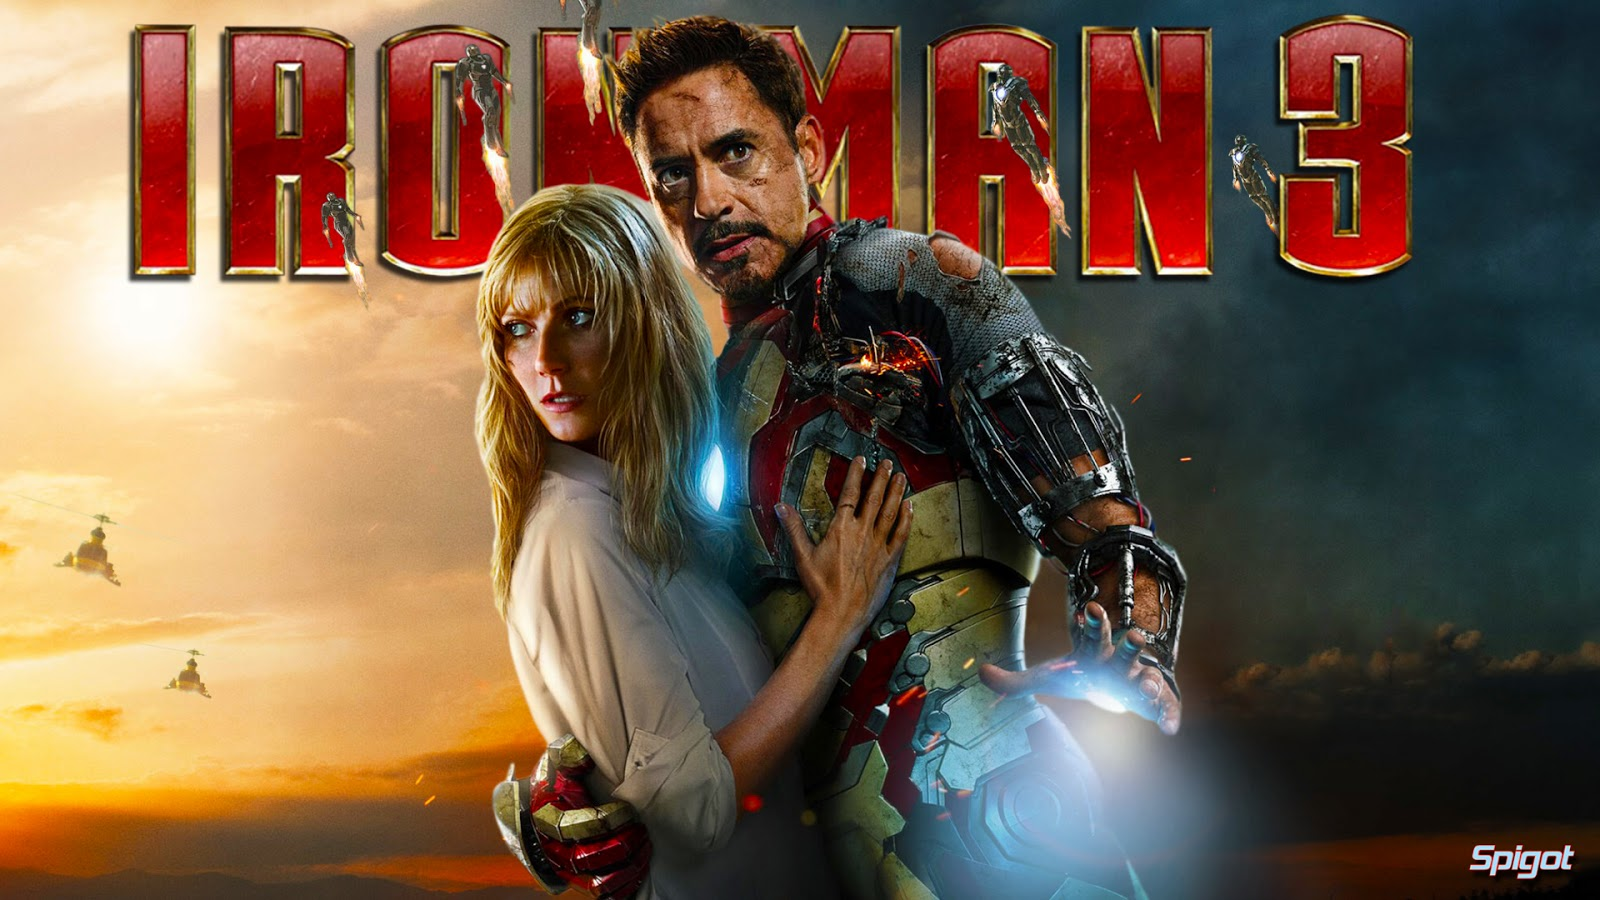 iron man 3 movie free download online hd | all movies to download